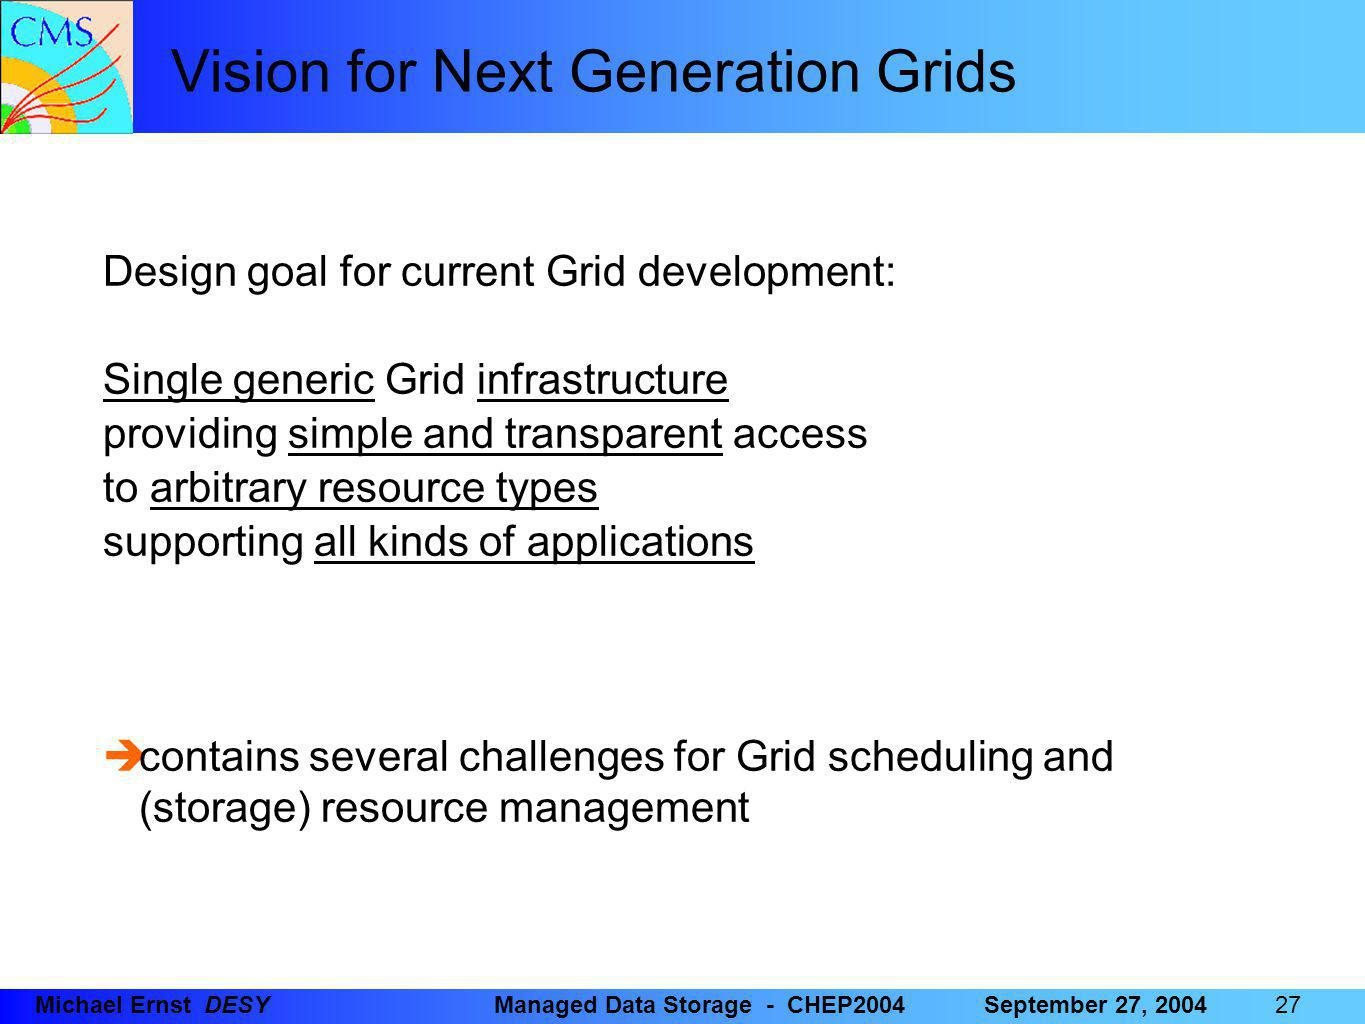 27 Michael Ernst DESYManaged Data Storage - CHEP2004September 27, 2004 Vision for Next Generation Grids Design goal for current Grid development: Single generic Grid infrastructure providing simple and transparent access to arbitrary resource types supporting all kinds of applications  contains several challenges for Grid scheduling and (storage) resource management